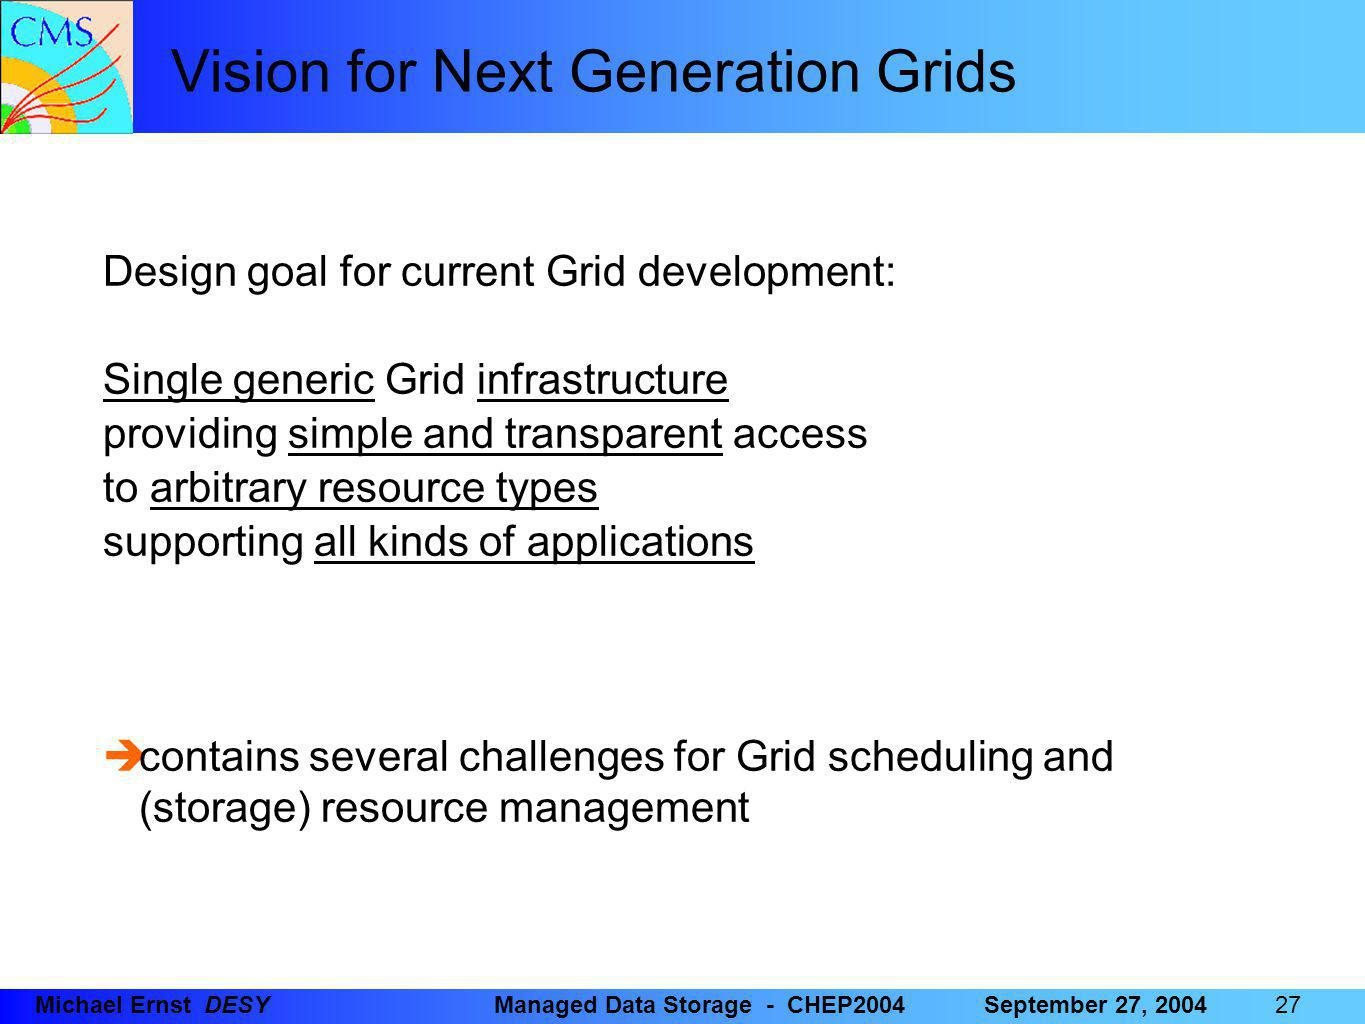 27 Michael Ernst DESYManaged Data Storage - CHEP2004September 27, 2004 Vision for Next Generation Grids Design goal for current Grid development: Single generic Grid infrastructure providing simple and transparent access to arbitrary resource types supporting all kinds of applications  contains several challenges for Grid scheduling and (storage) resource management